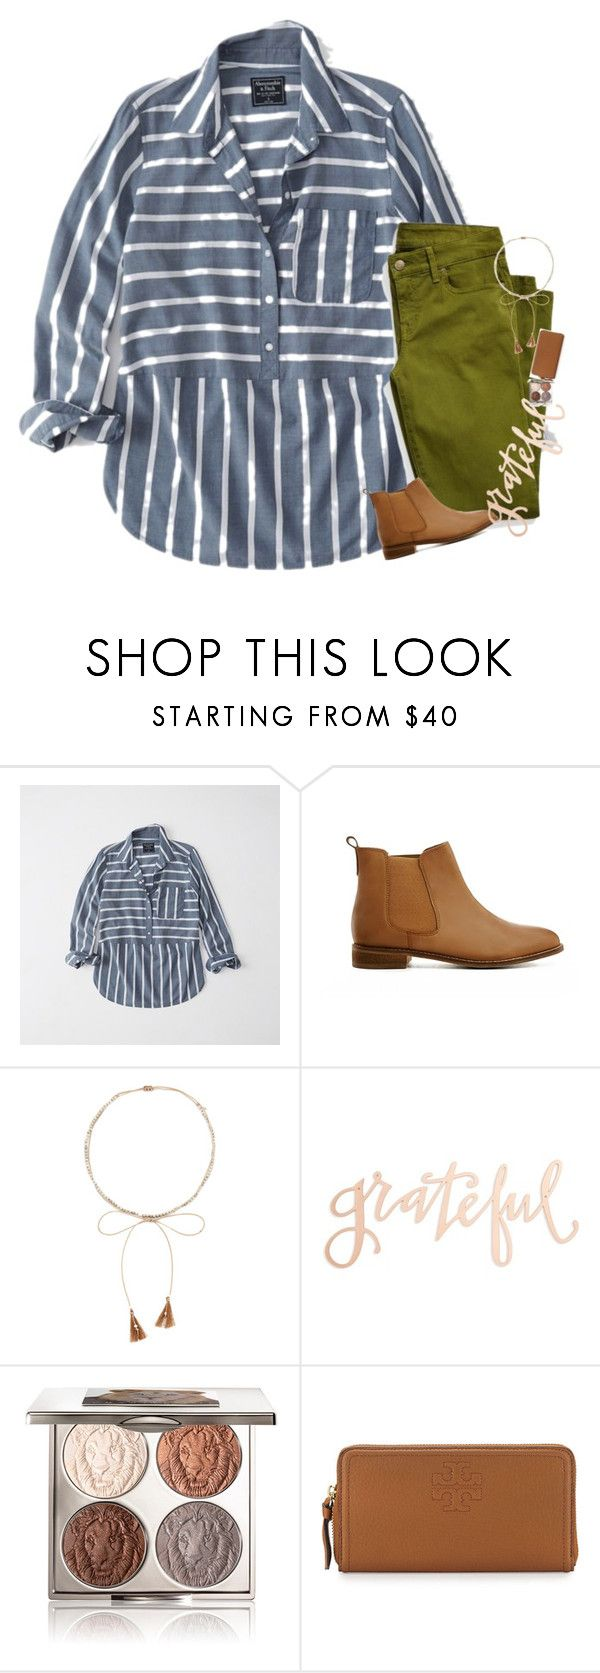 """""""HOMECOMING TODAY!!!"""" by mac-moses ❤ liked on Polyvore featuring Abercrombie & Fitch, ASOS, Chan Luu, Primitives By Kathy, Chantecaille and Tory Burch"""